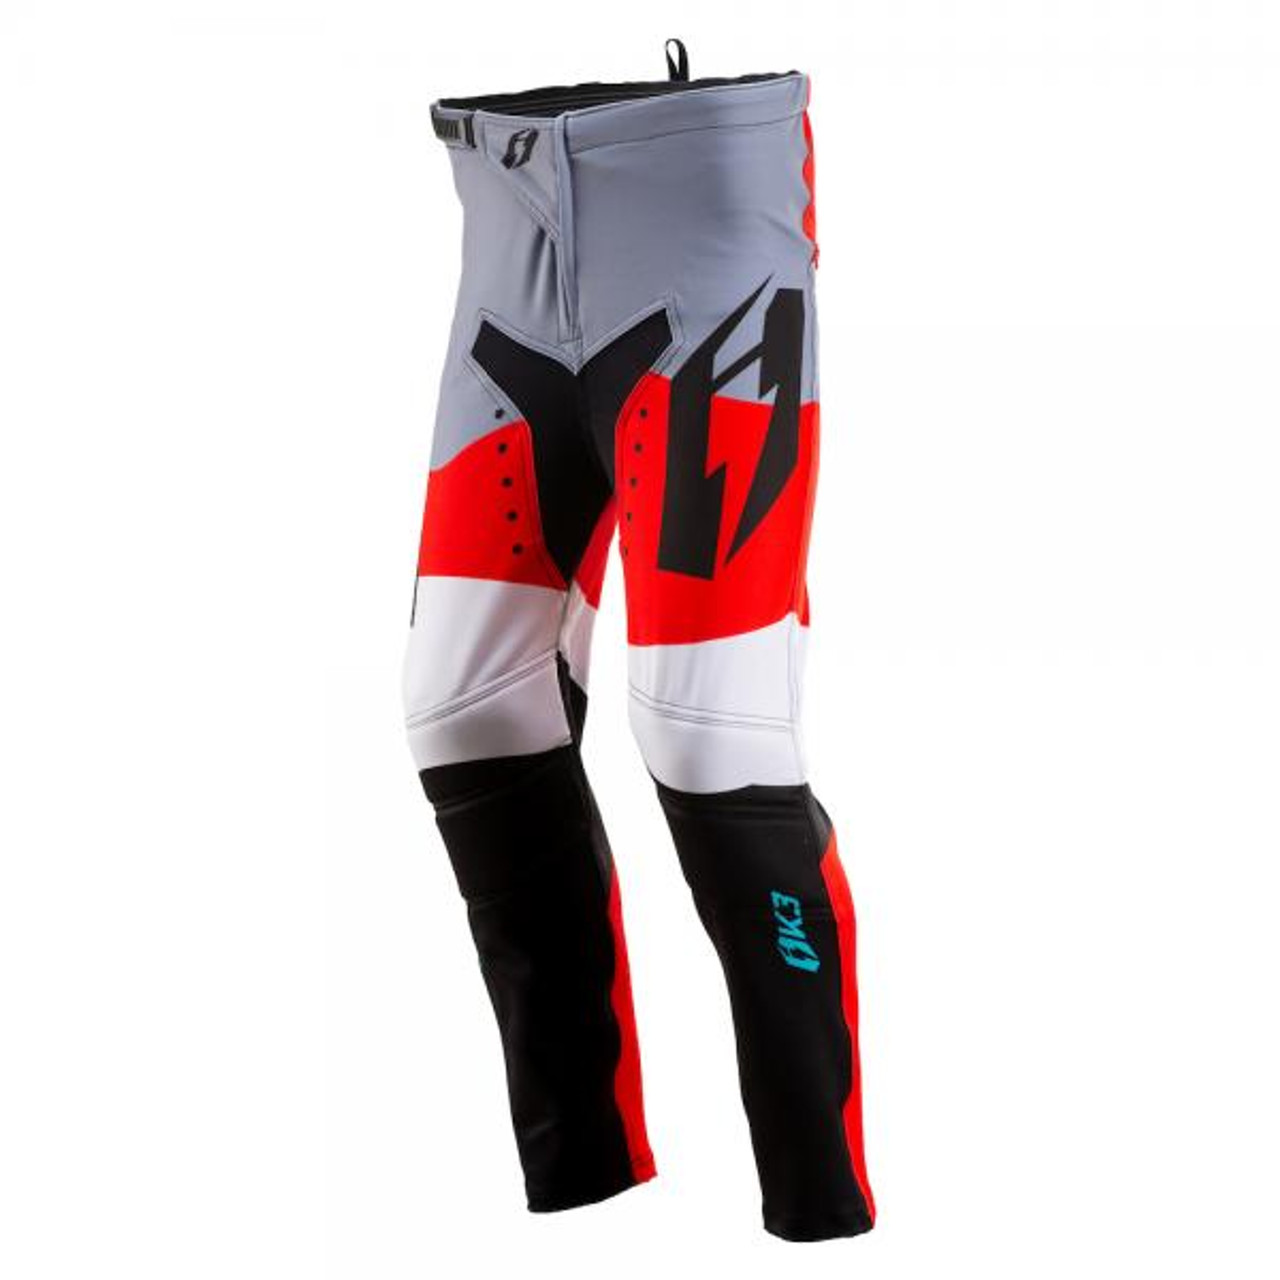 Kid's trials pants K3 Wave, black/ red/ teal